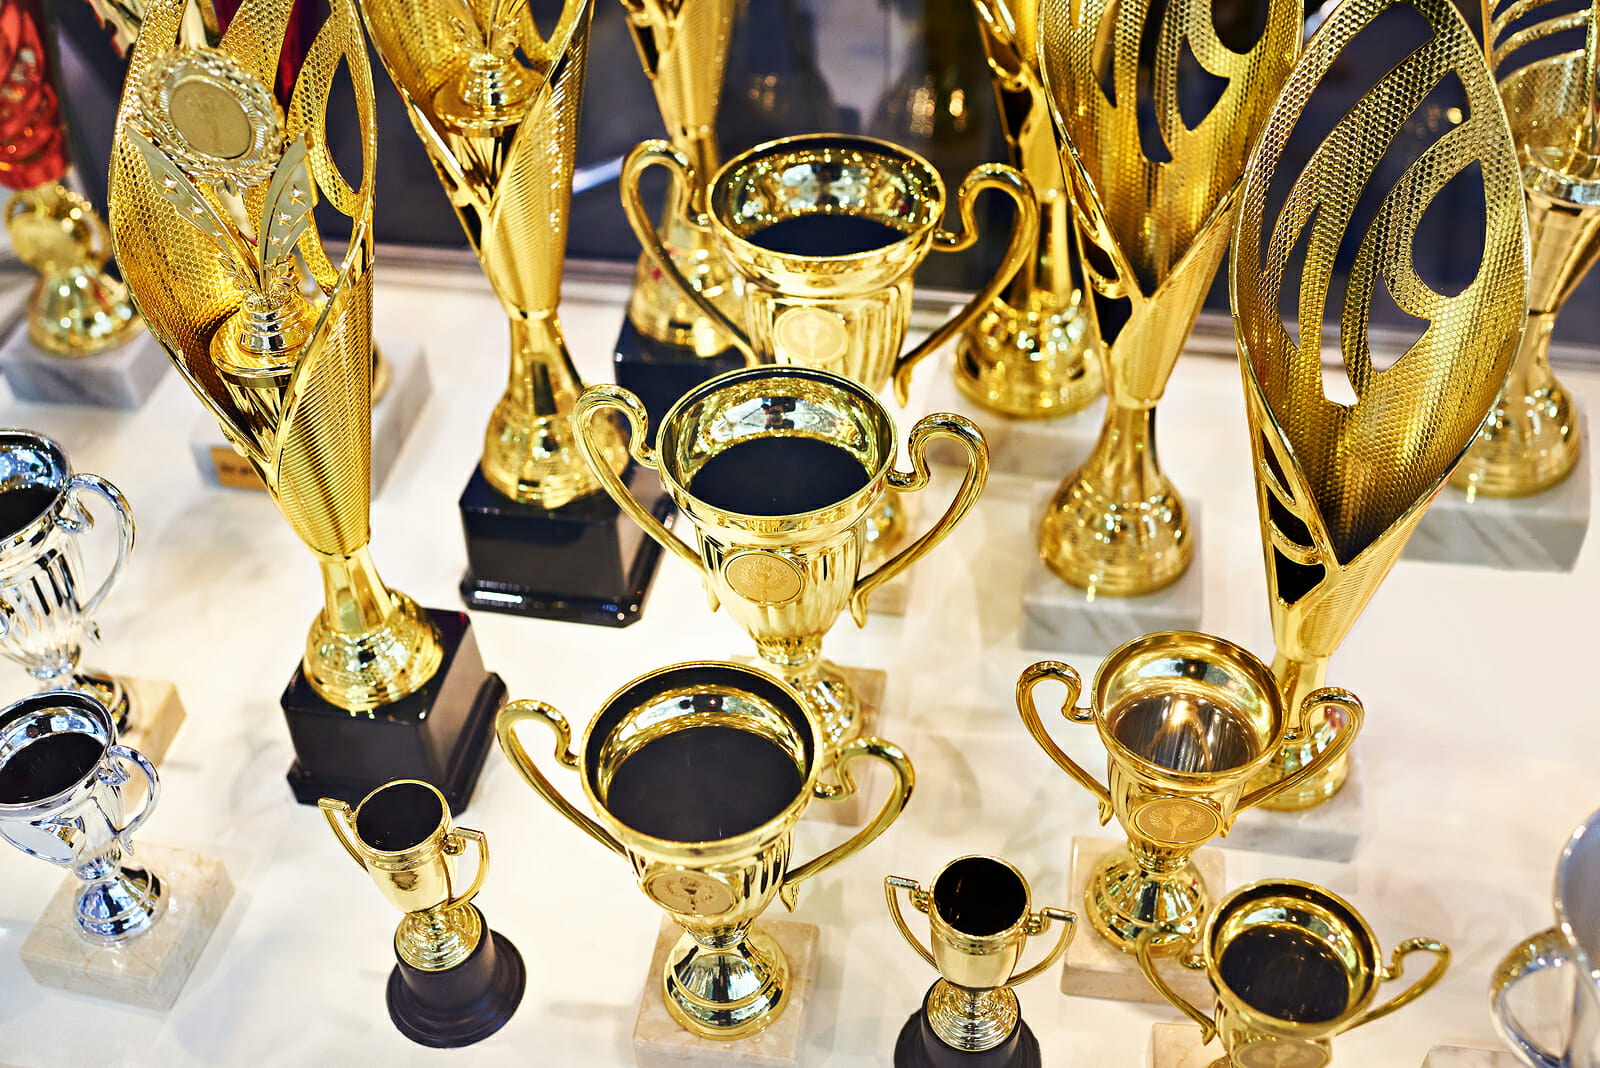 The Award Display Case - Home of Iconic Awards and Trophies